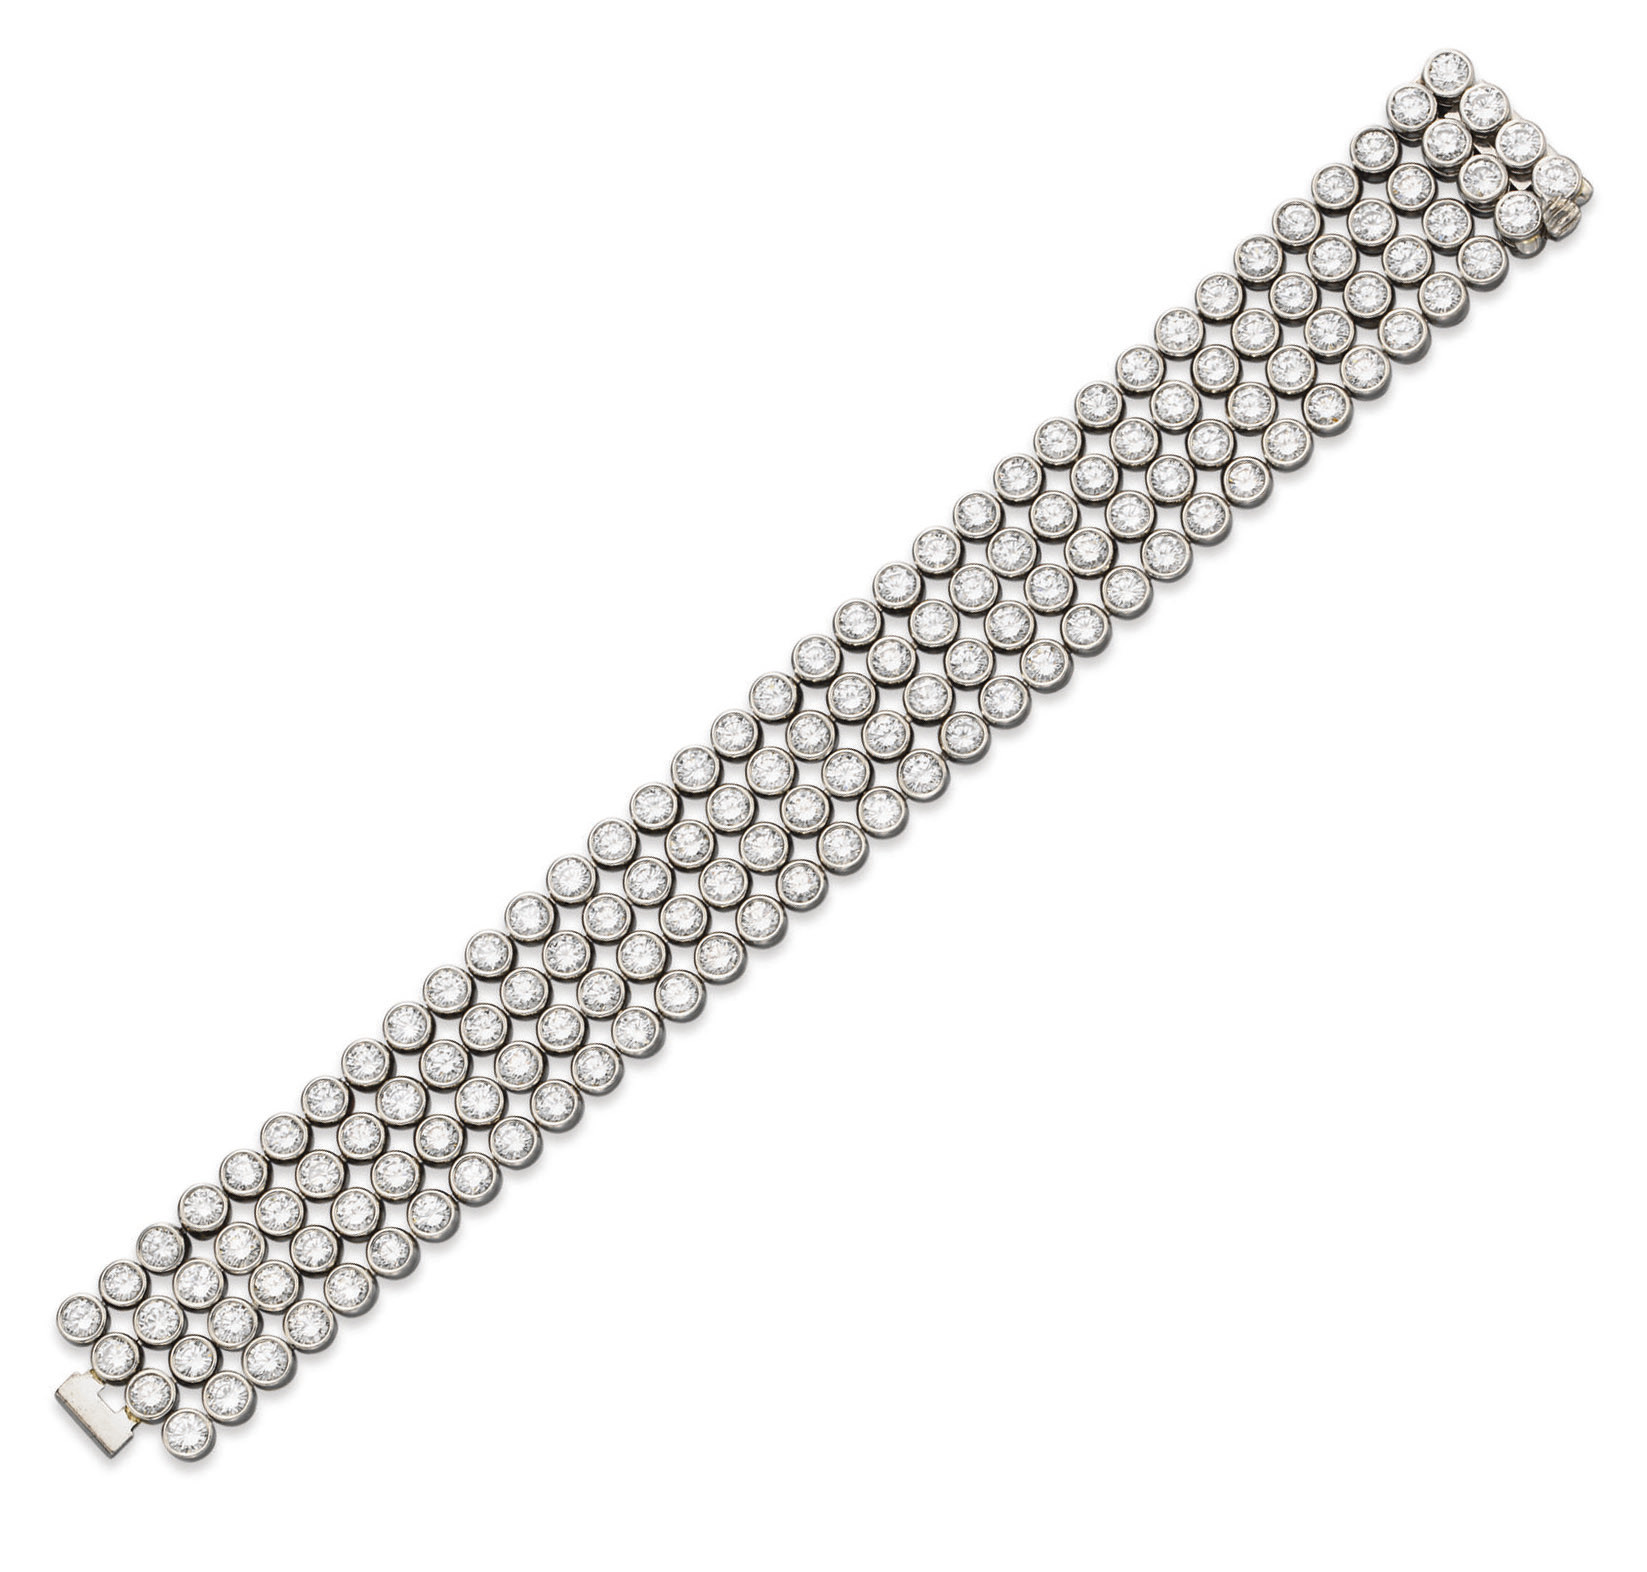 A DIAMOND BRACELET, BY HARRY W